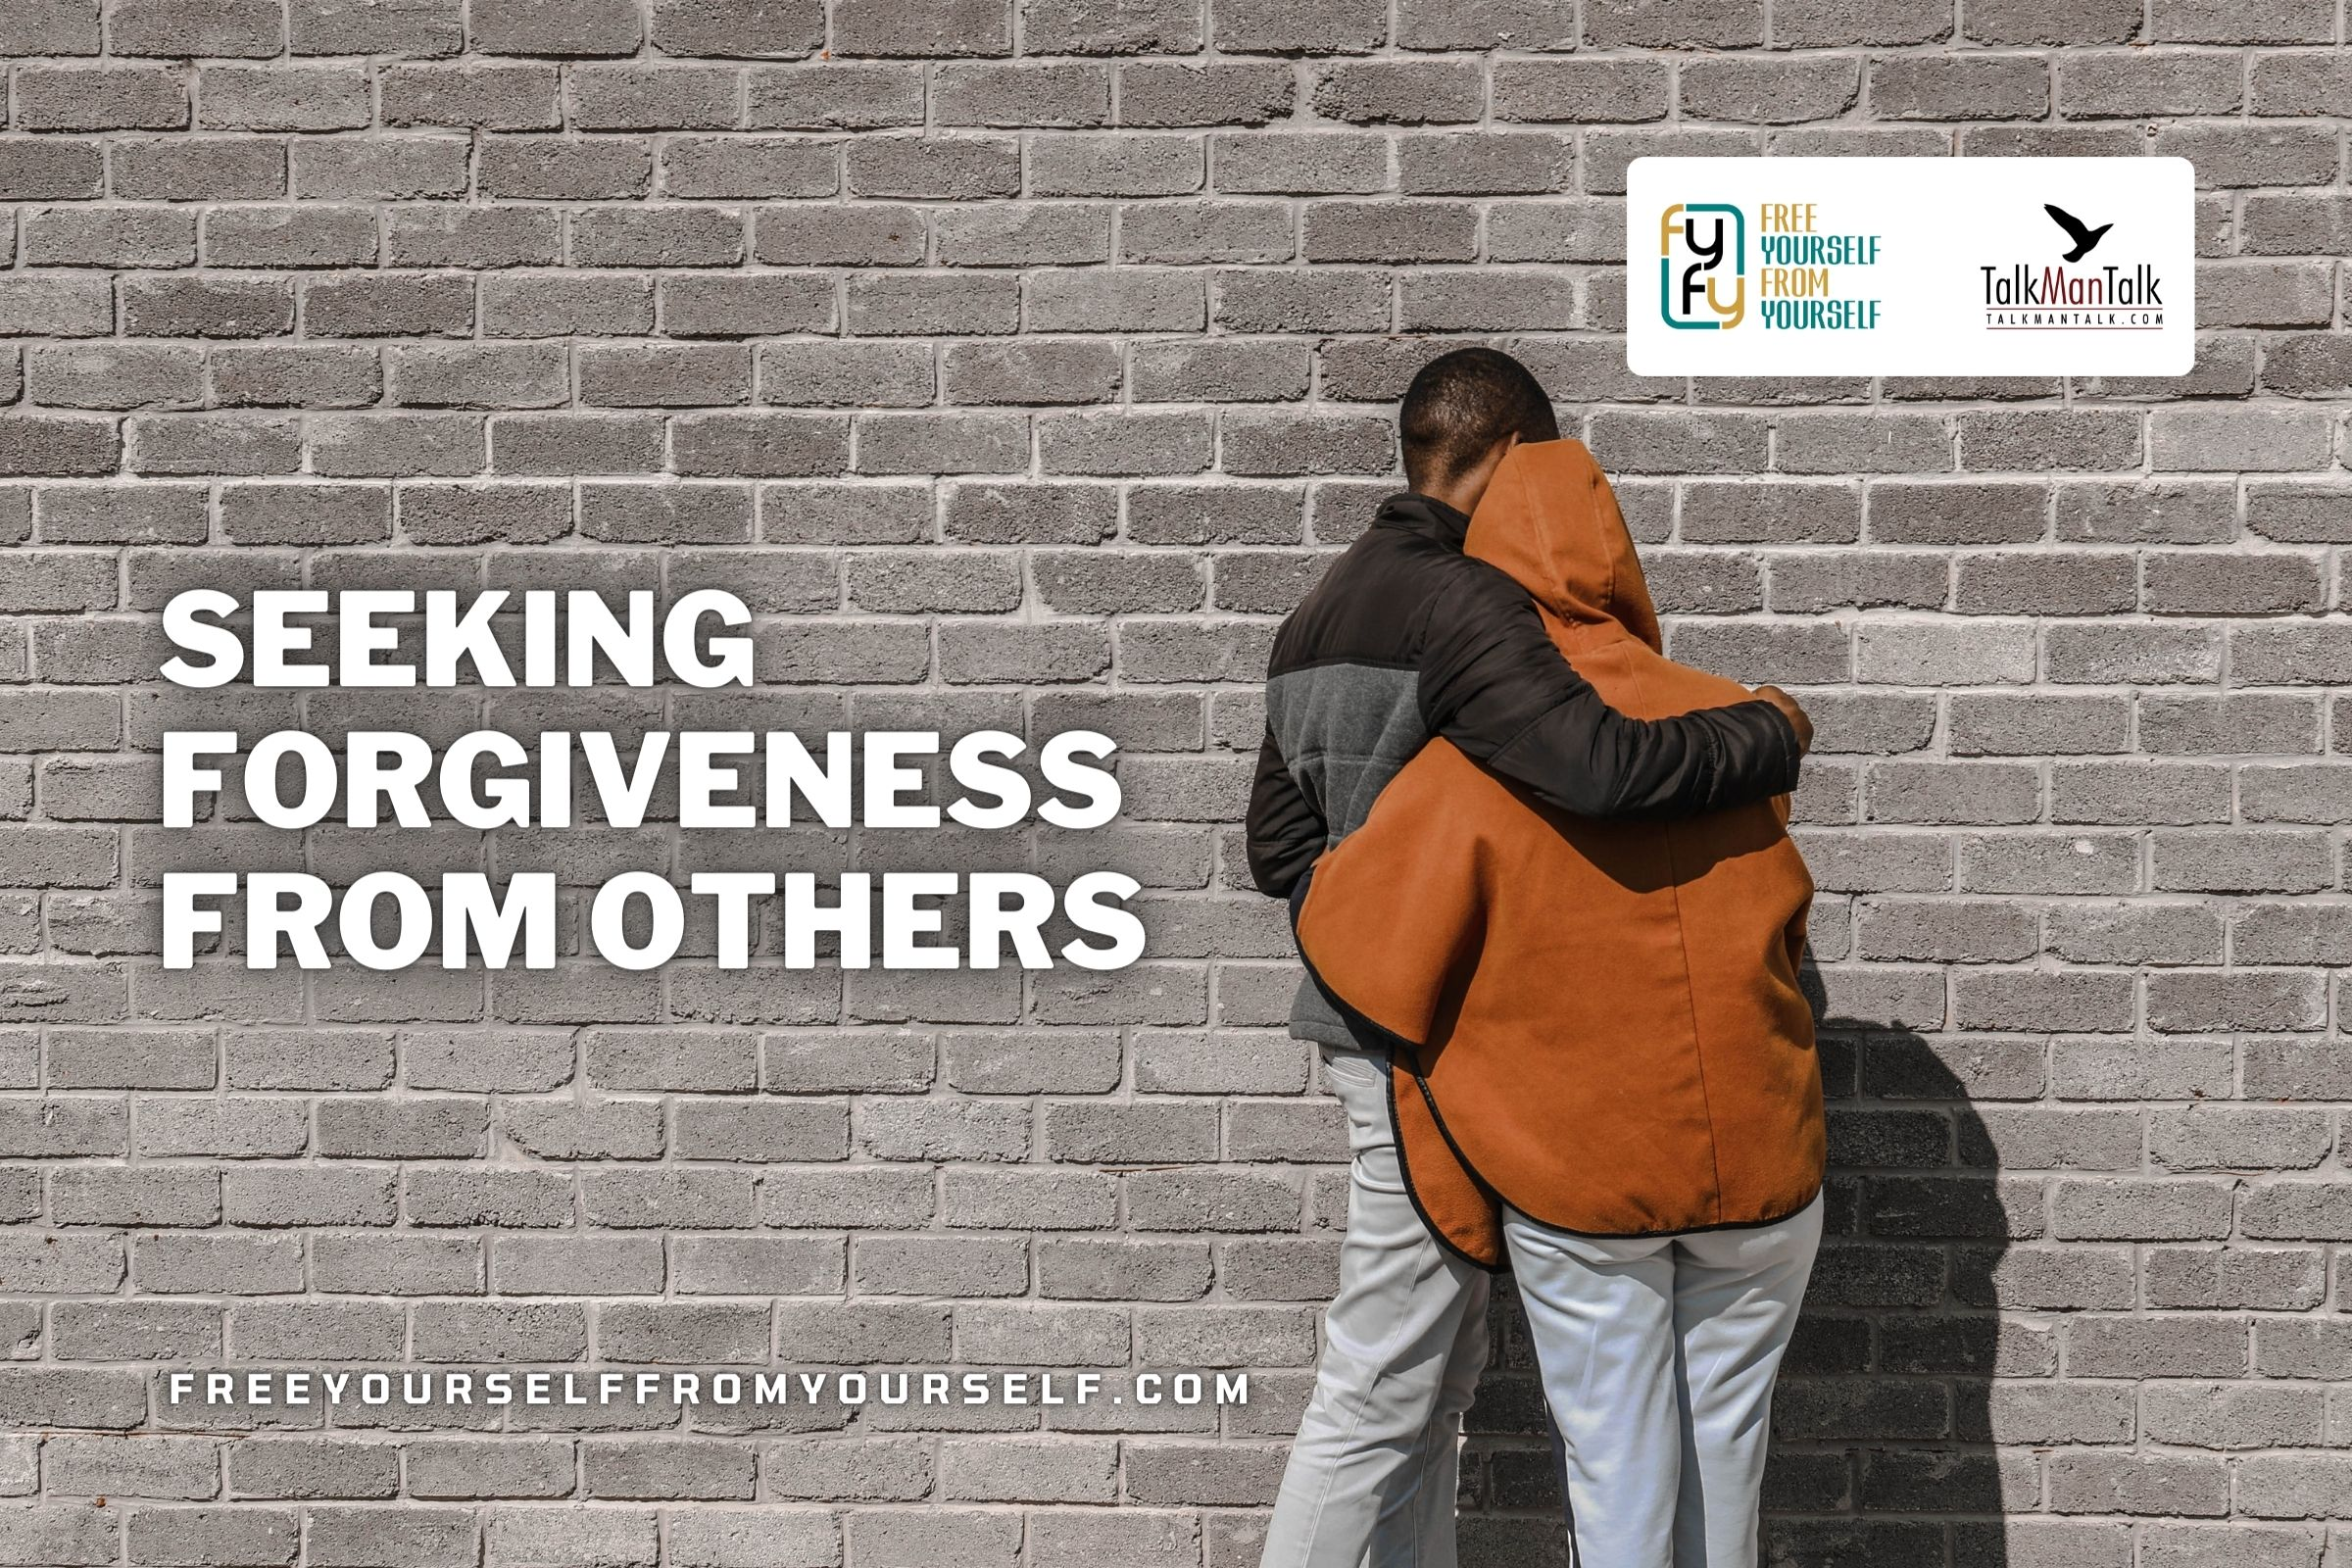 SEEKING FORGIVENESS FROM OTHERS